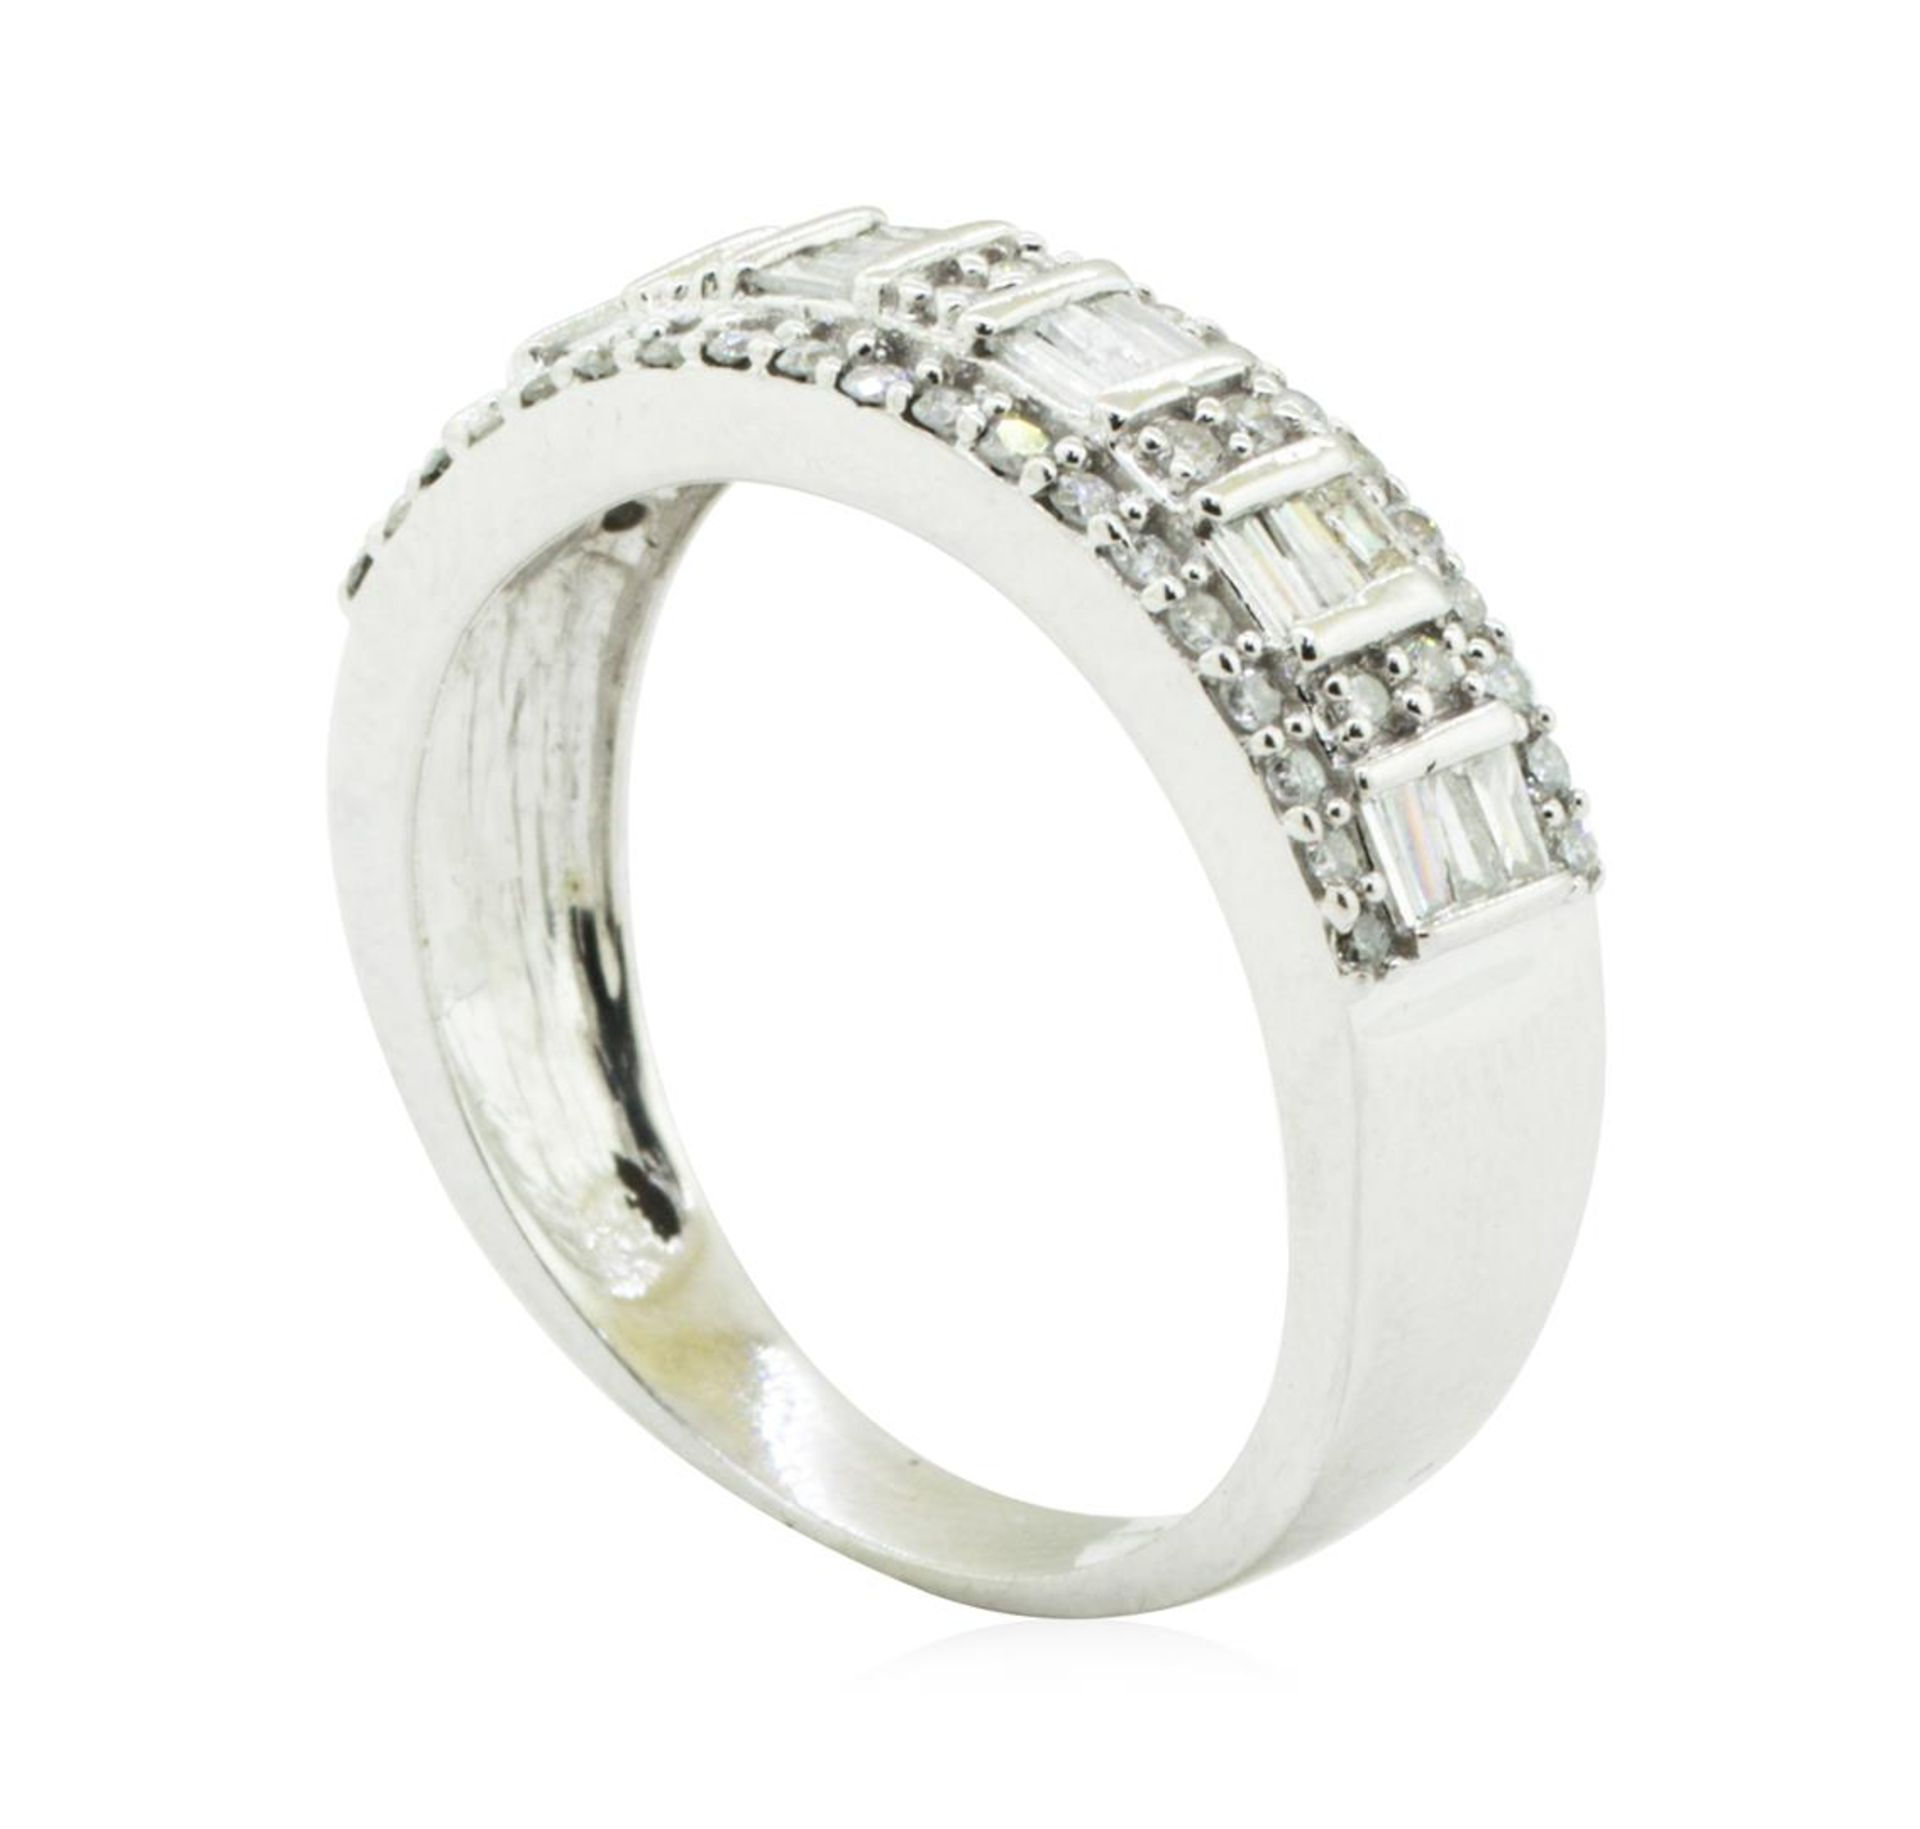 1.00 ctw Diamond Ring - 14KT White Gold - Image 4 of 4